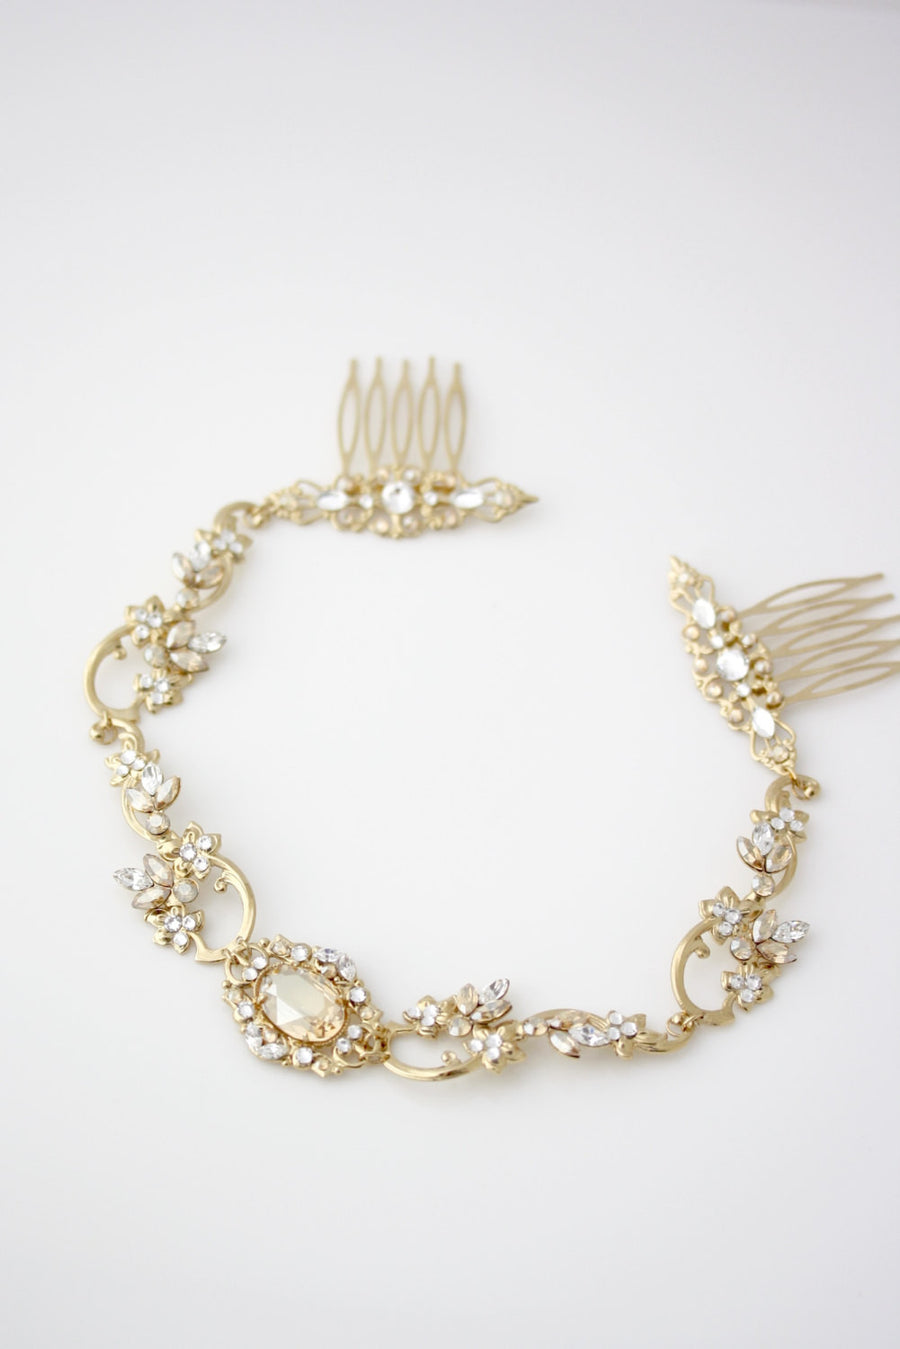 Ryan Gold Bridal Headband